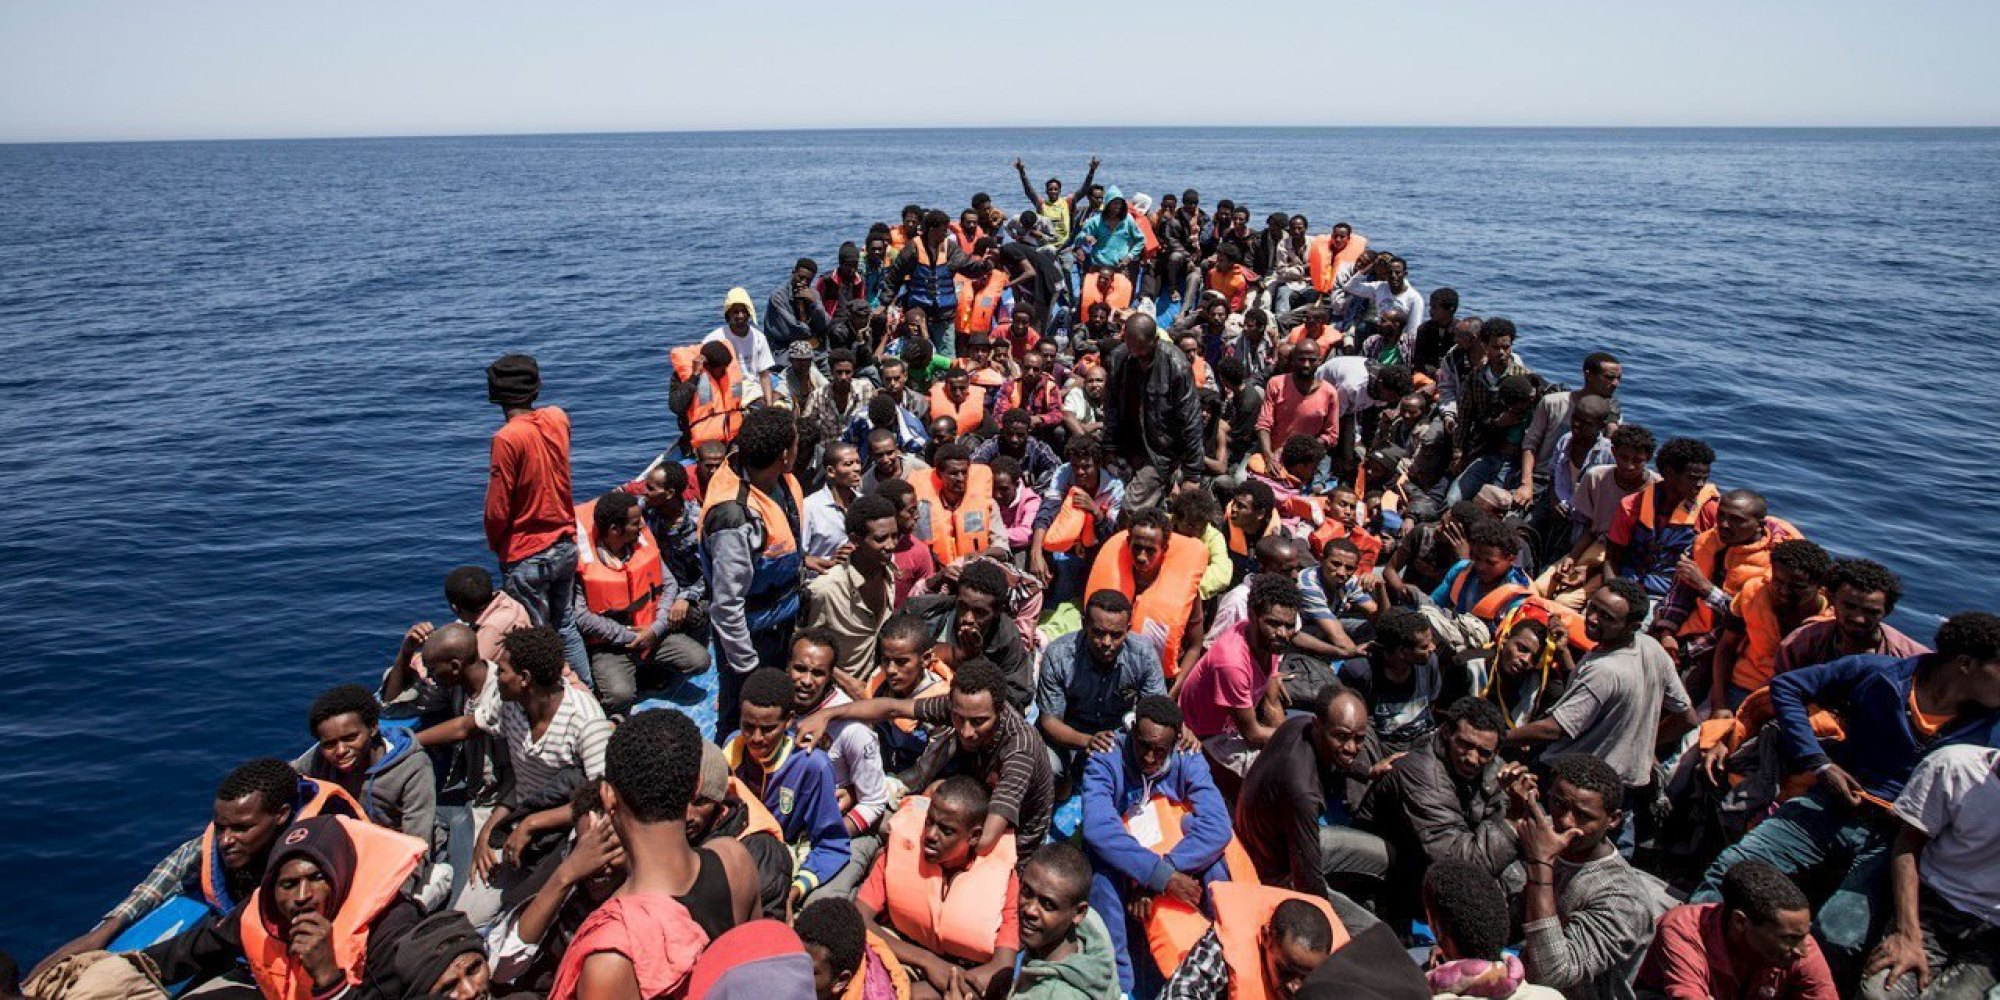 Migrants crowd the deck of their wooden boat off the coast of Libya